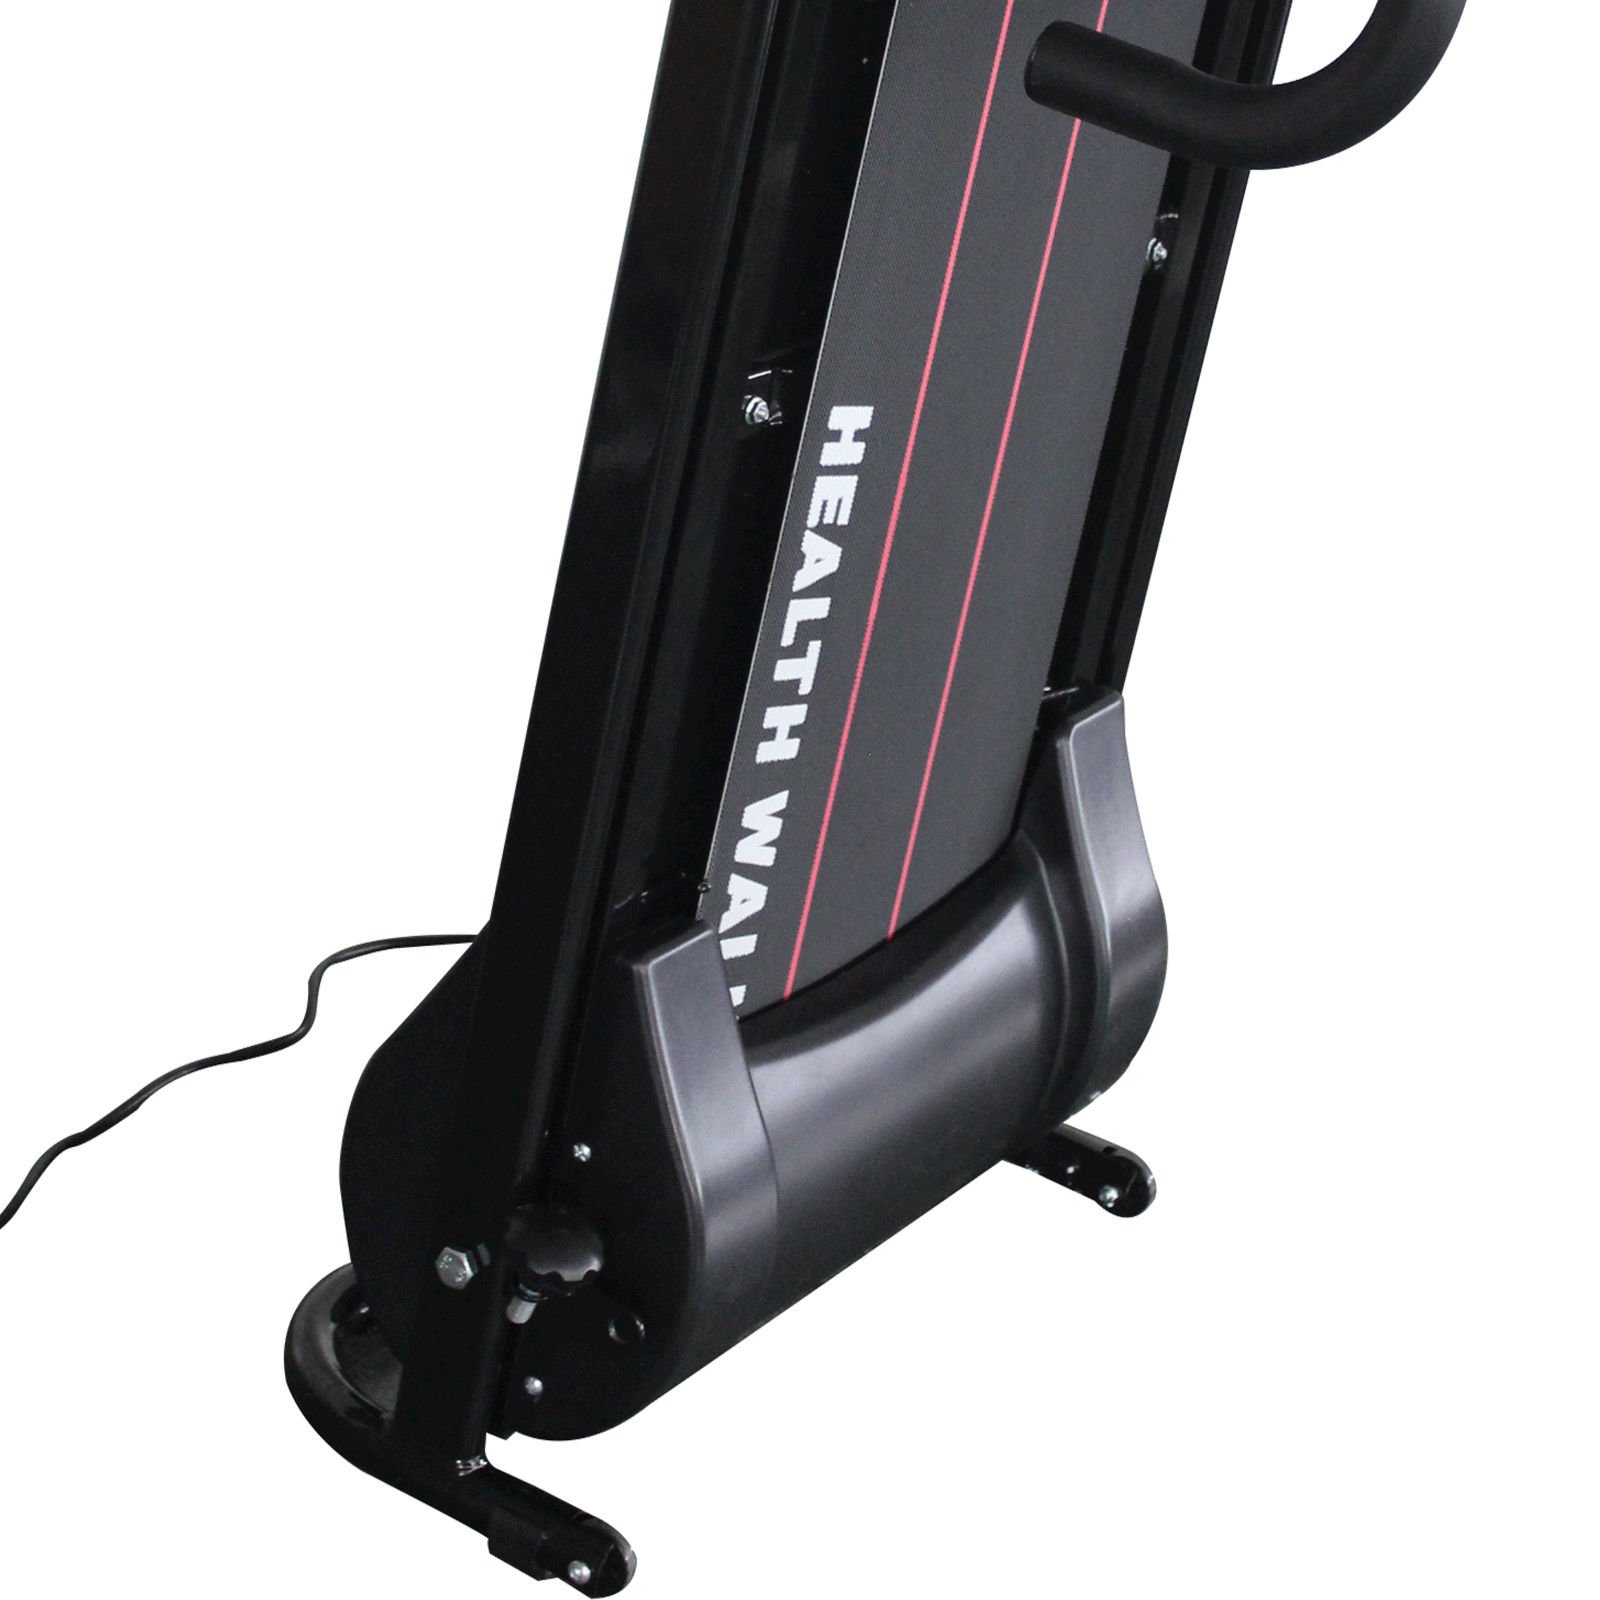 Portable 500W Folding Electric Motorized Treadmill Running Gym Fitness Machine by ZETY (Image #9)